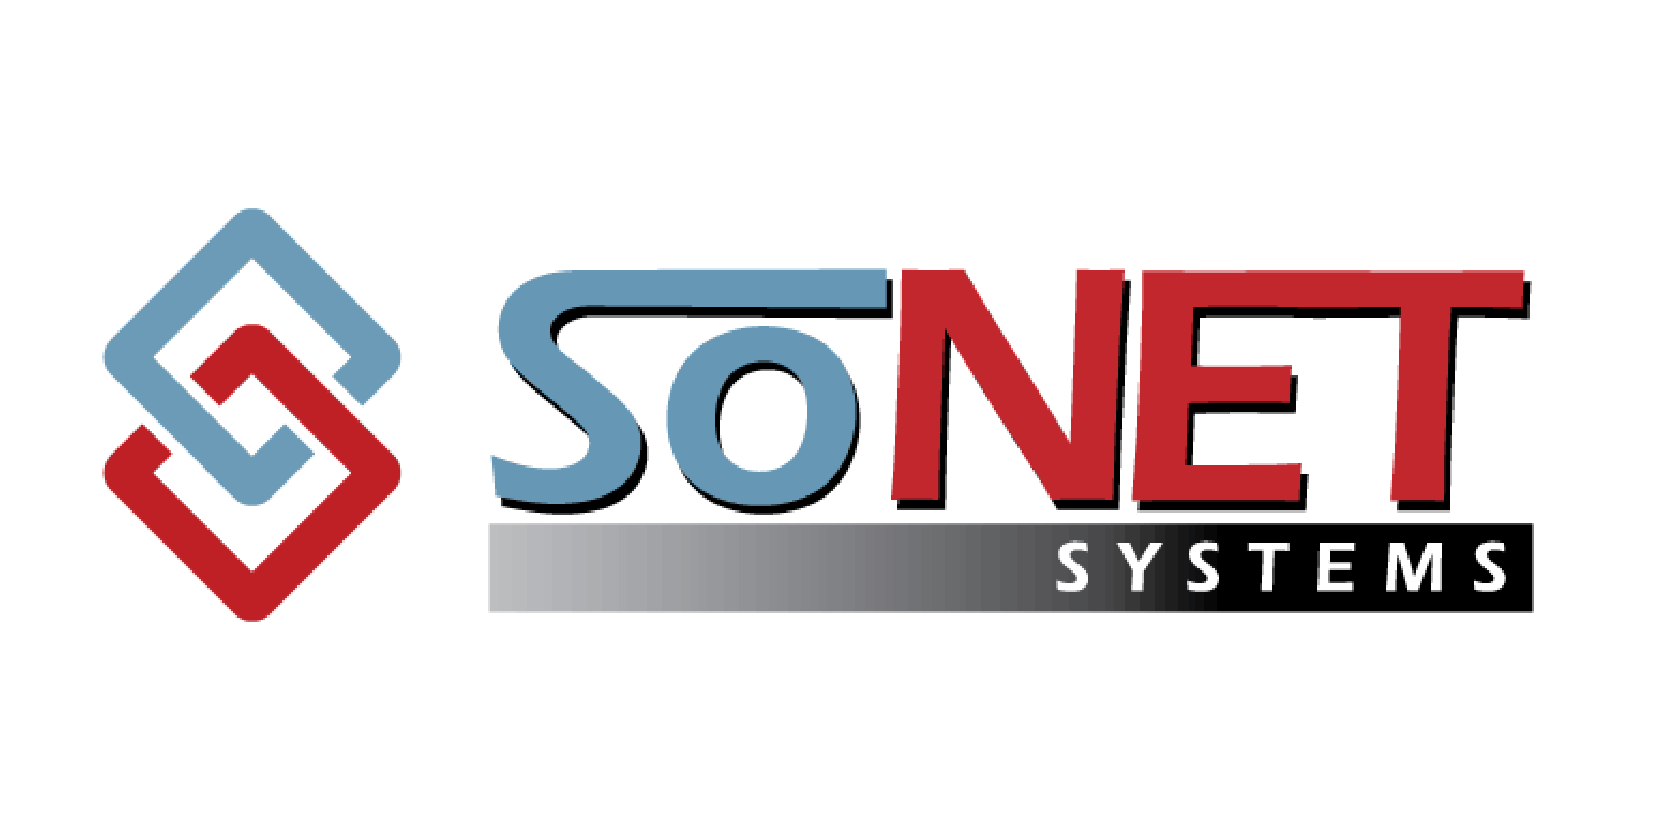 SonnetExWeb 1 - National Conference sponsors and exhibitors